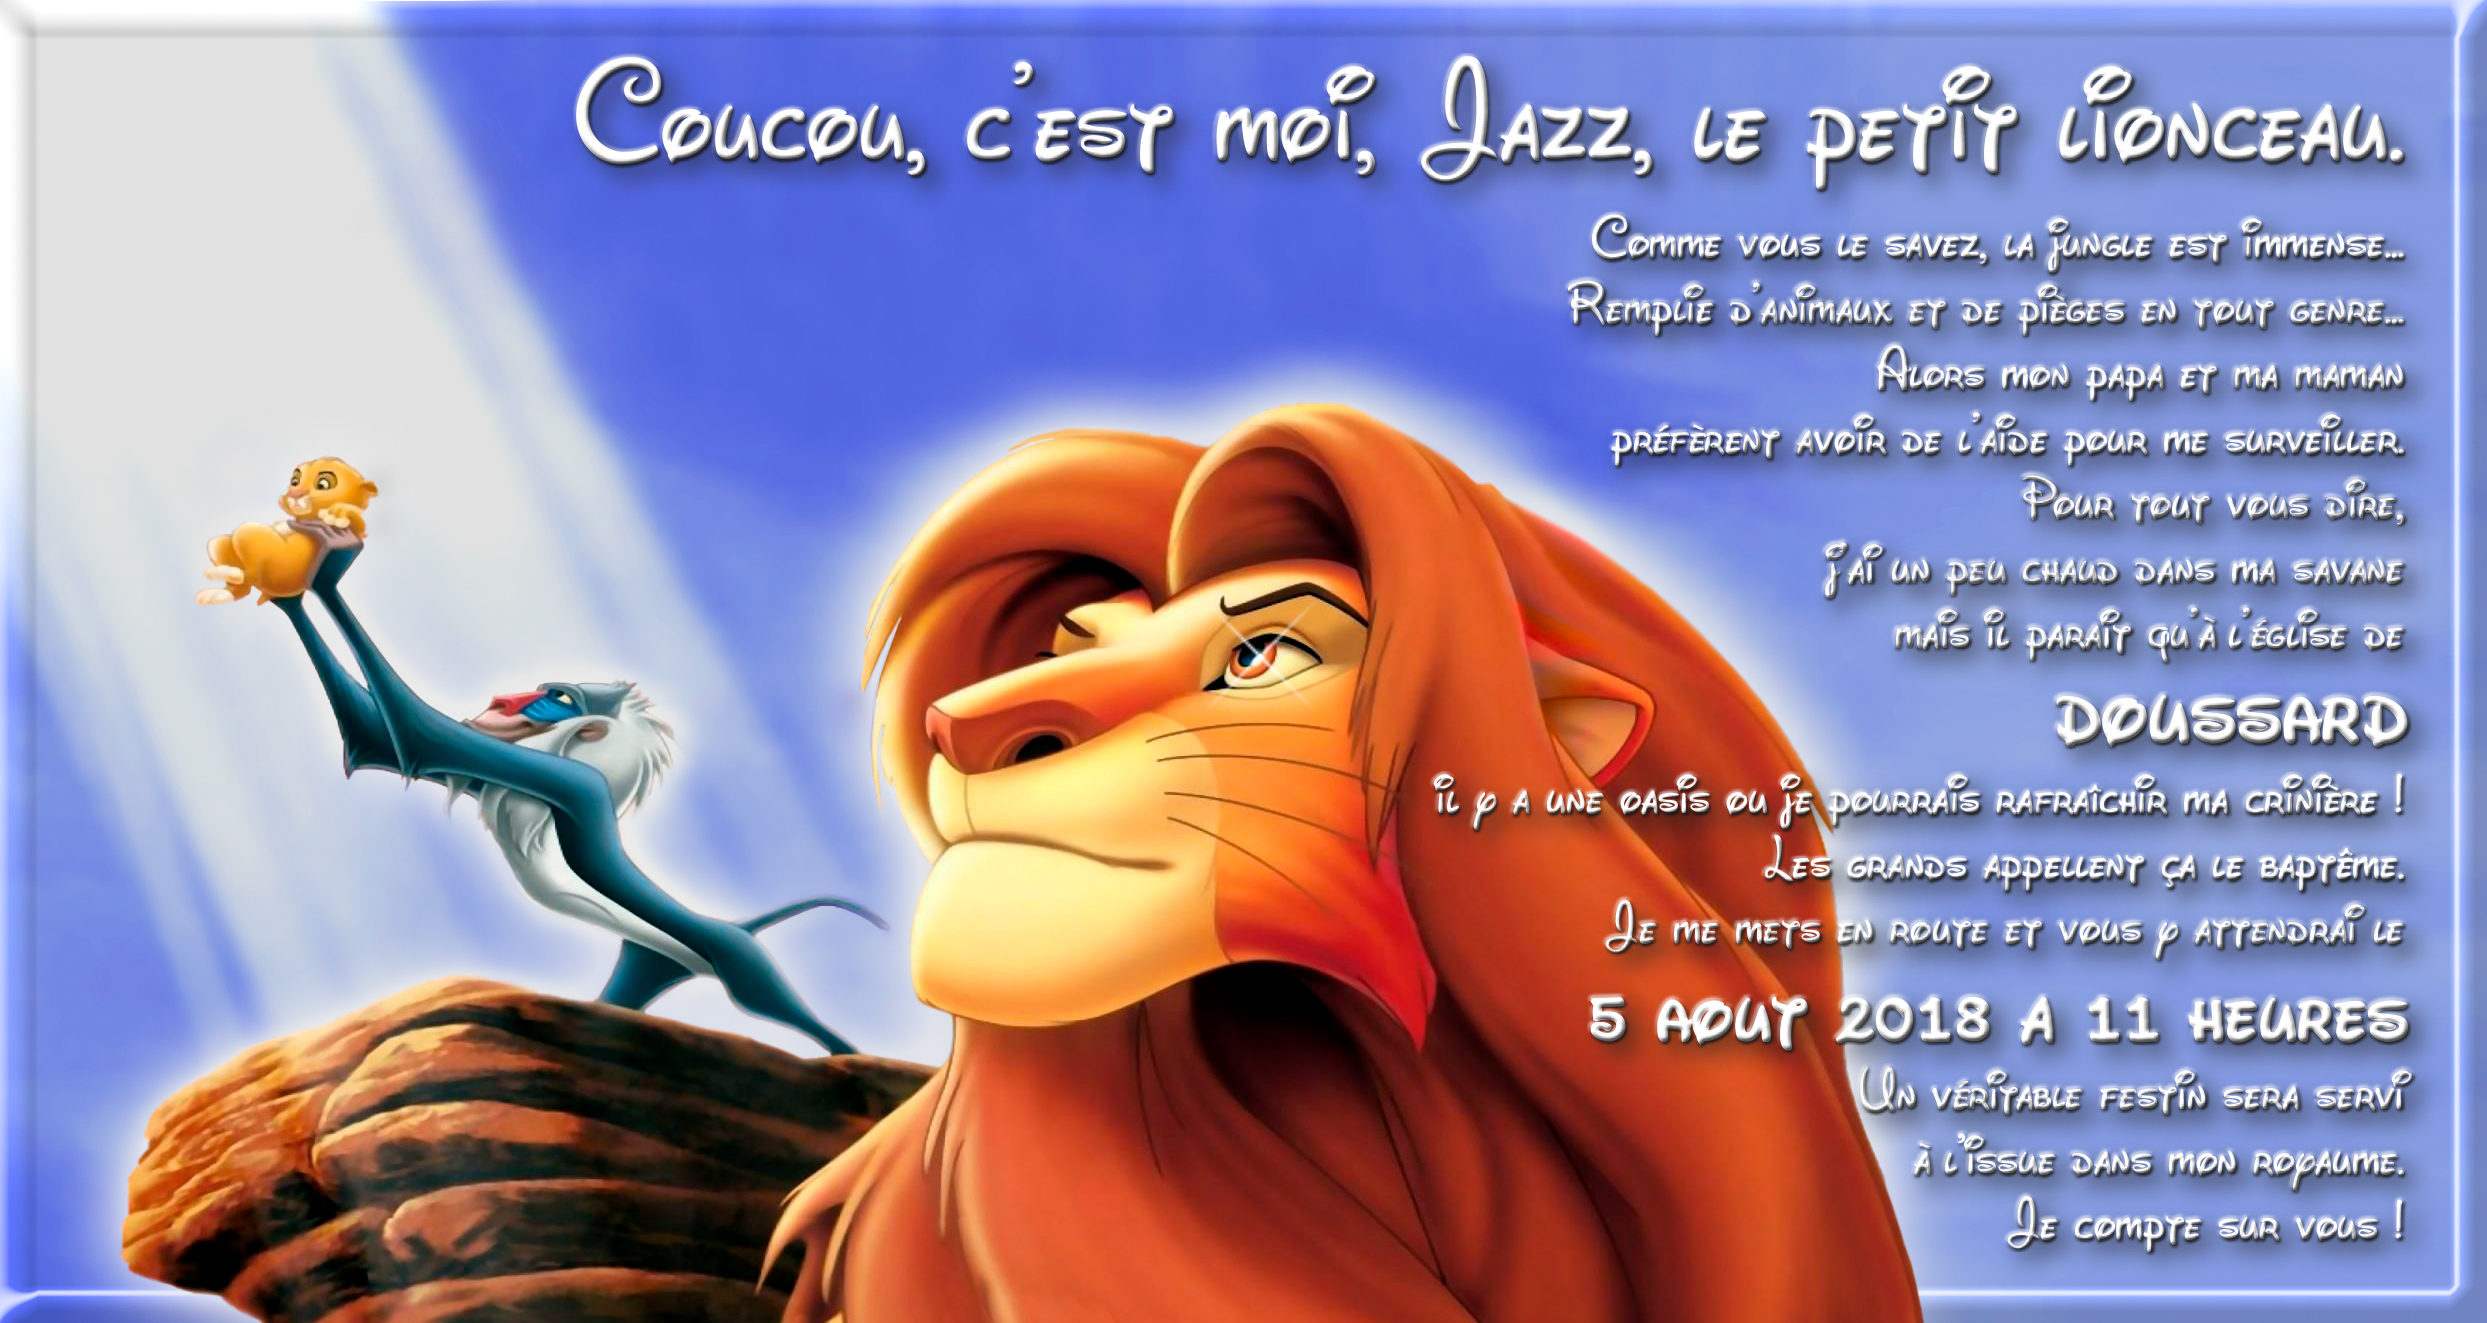 Faire part bapteme le roi lion  - Page 2 1803220304076068